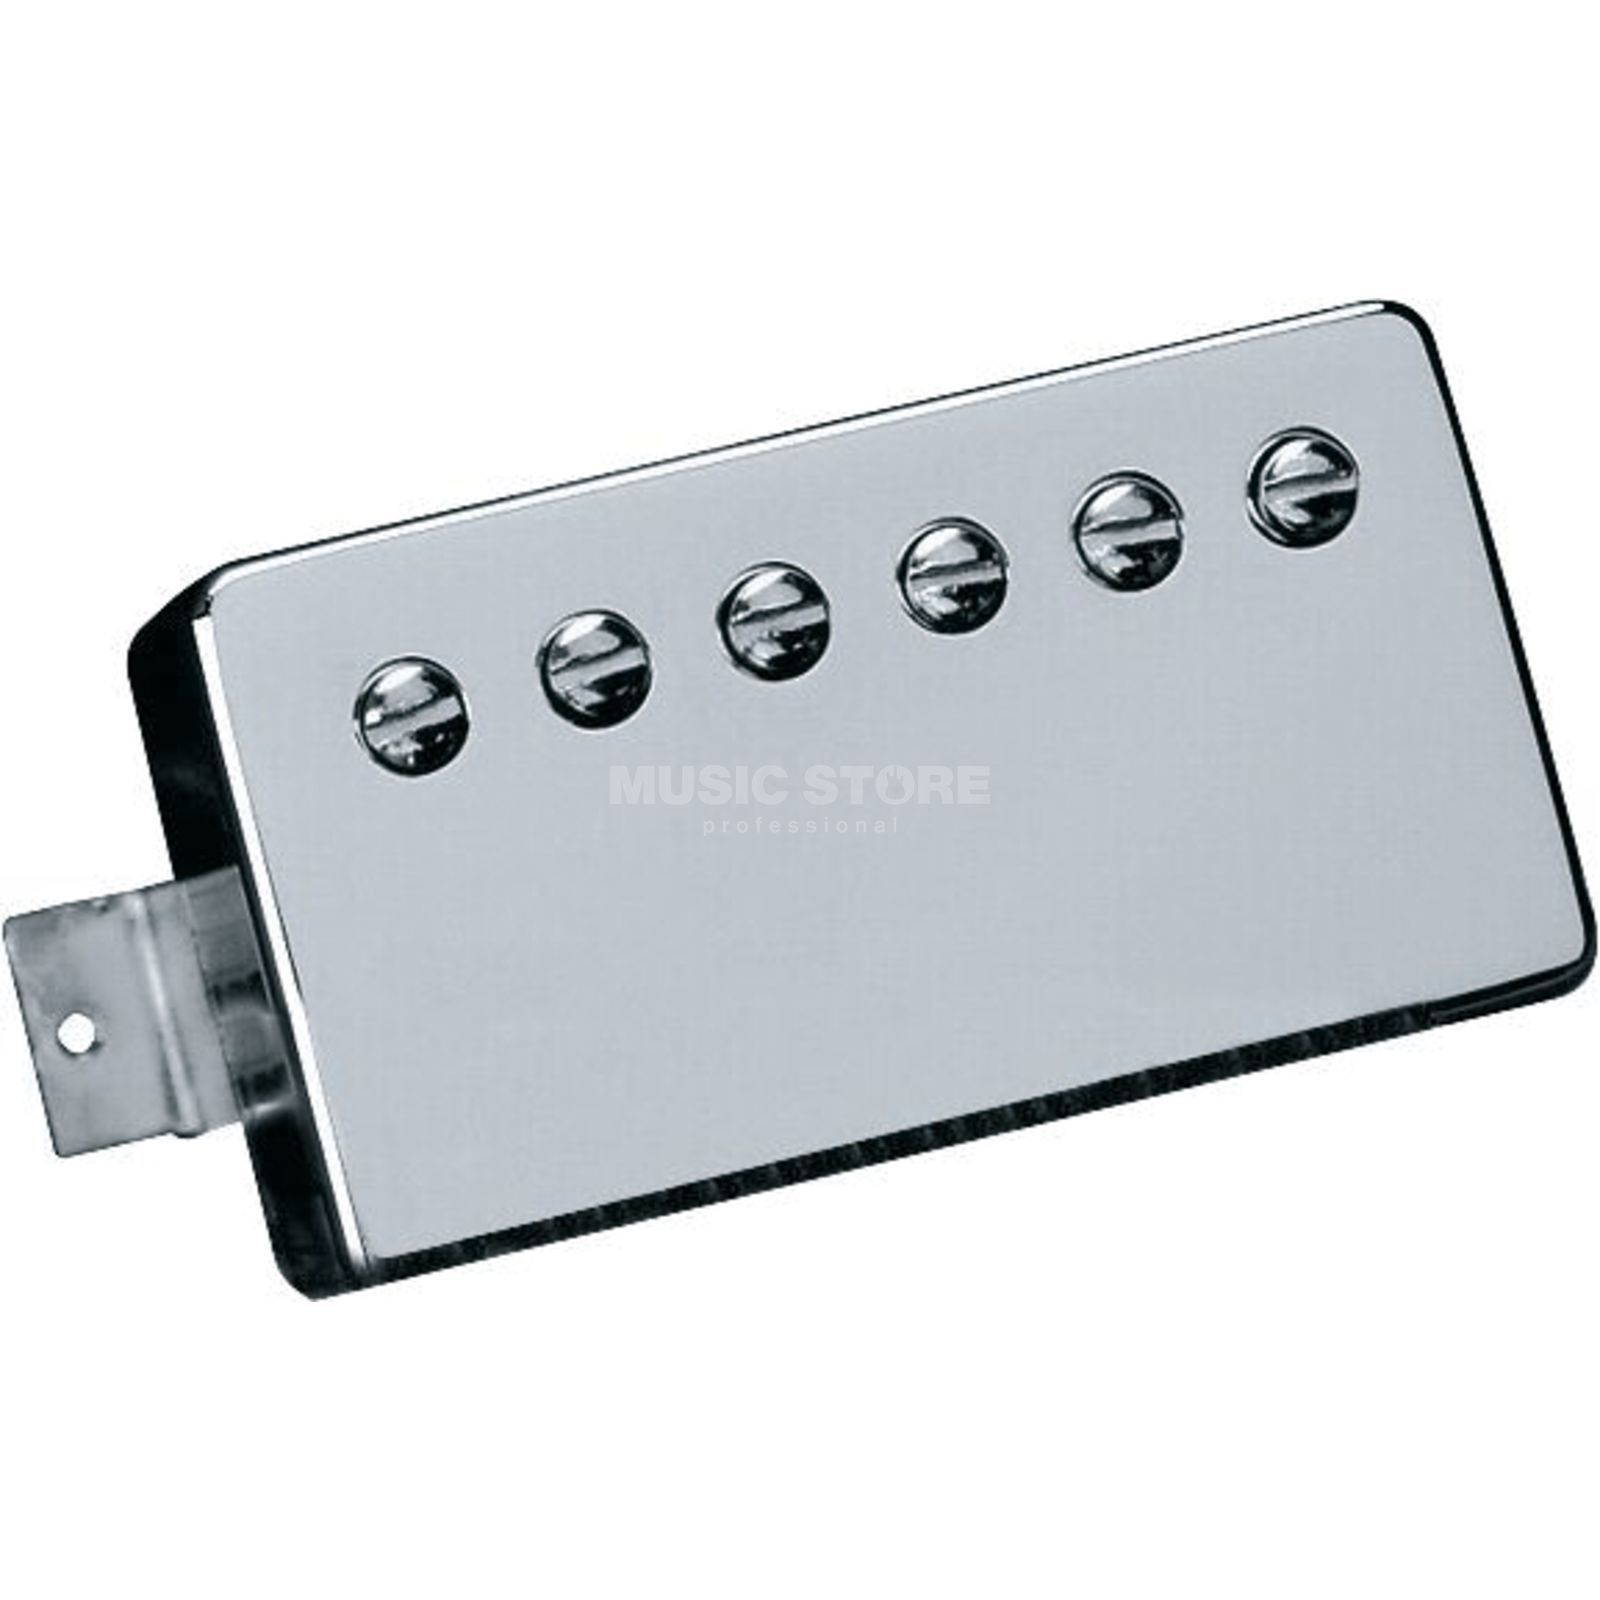 Gibson Burstbucker Pro Electric Guita r Humbucker Bridge Pickup   Produktbillede